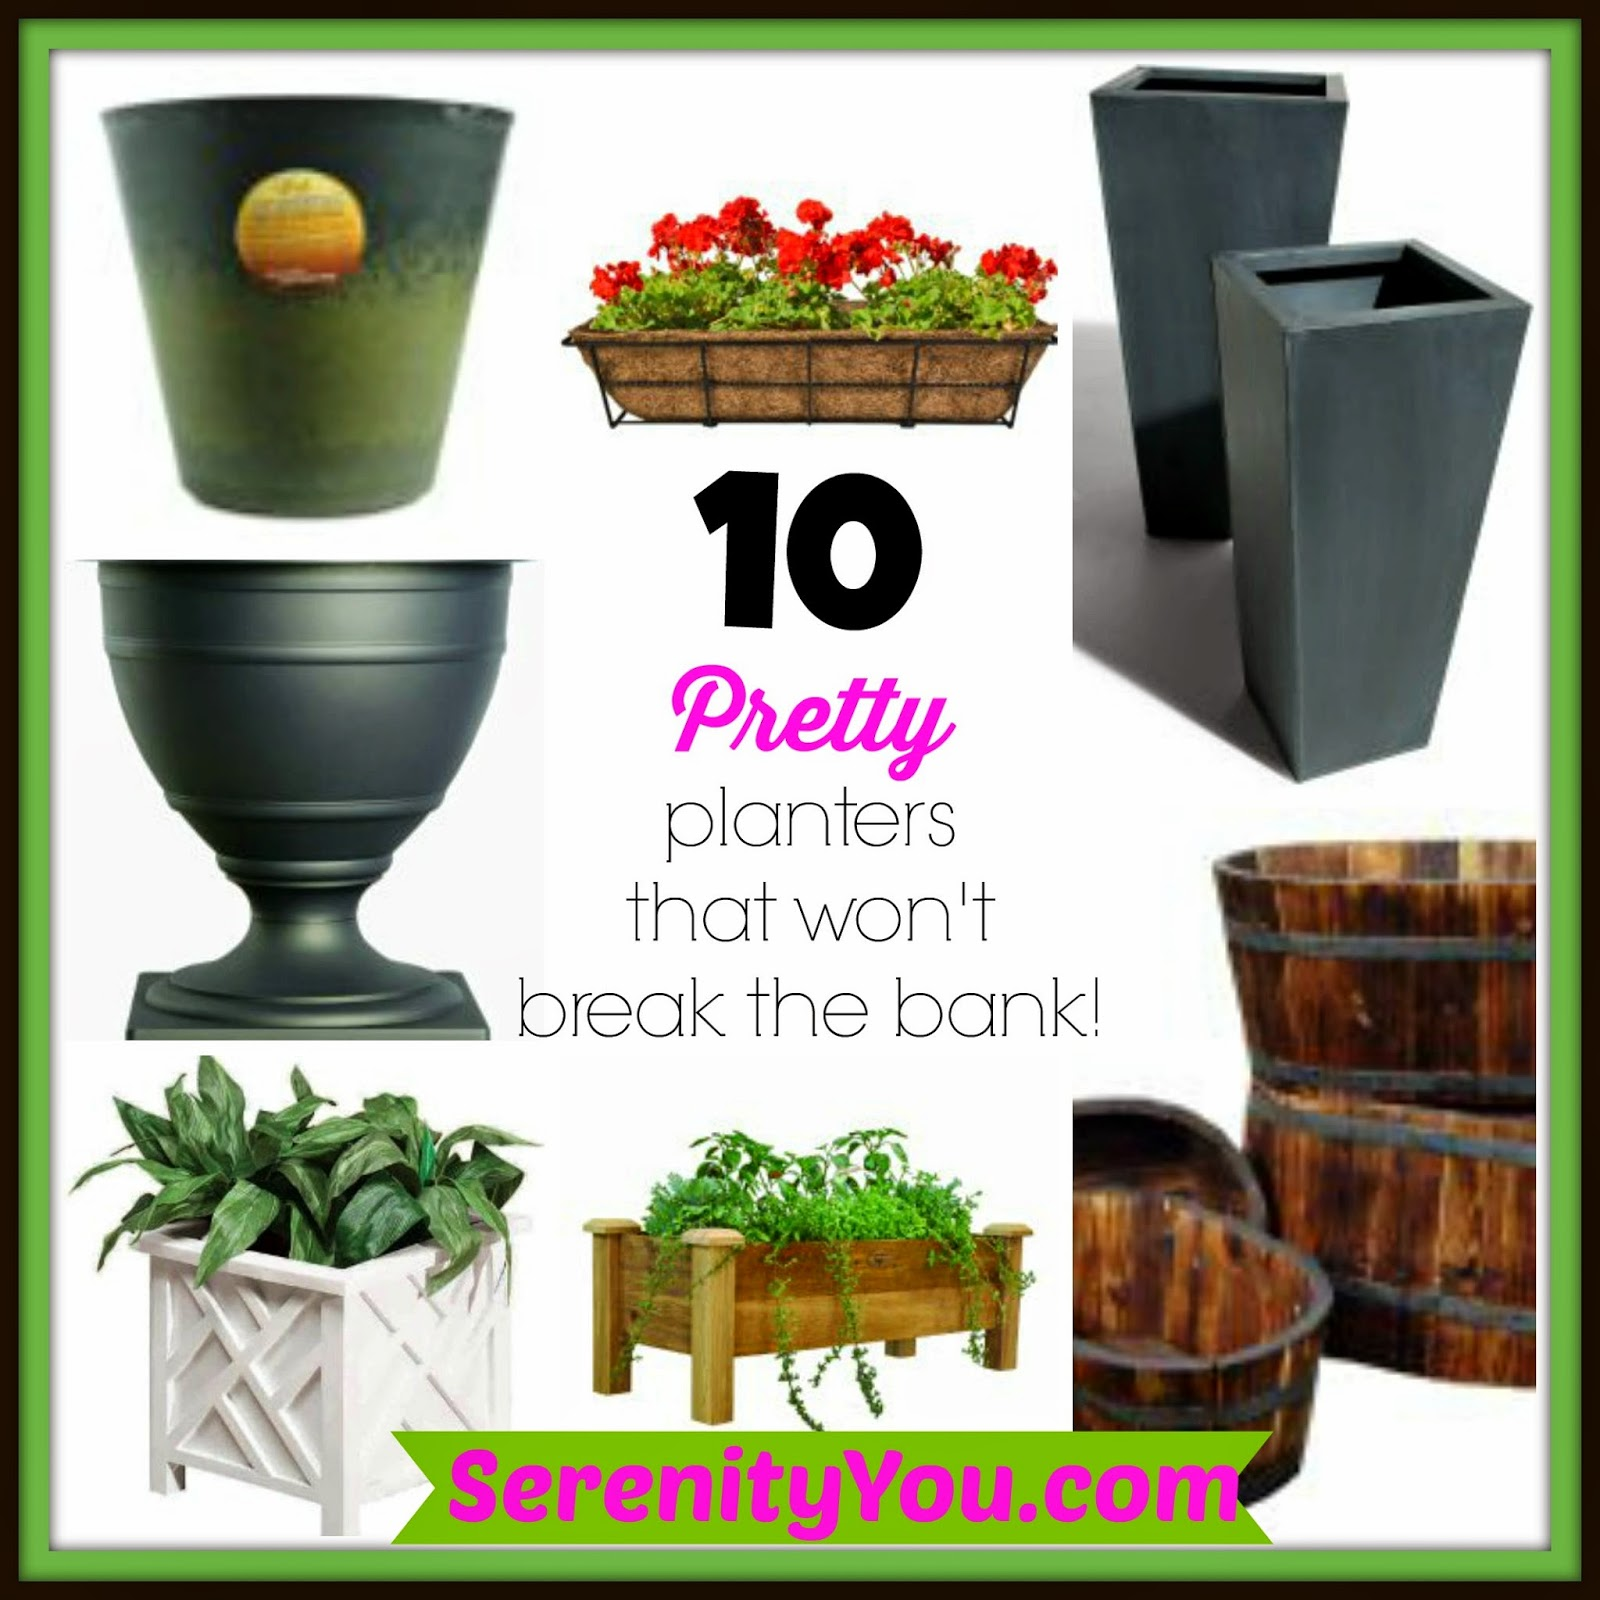 10 pretty planters that won't break the bank